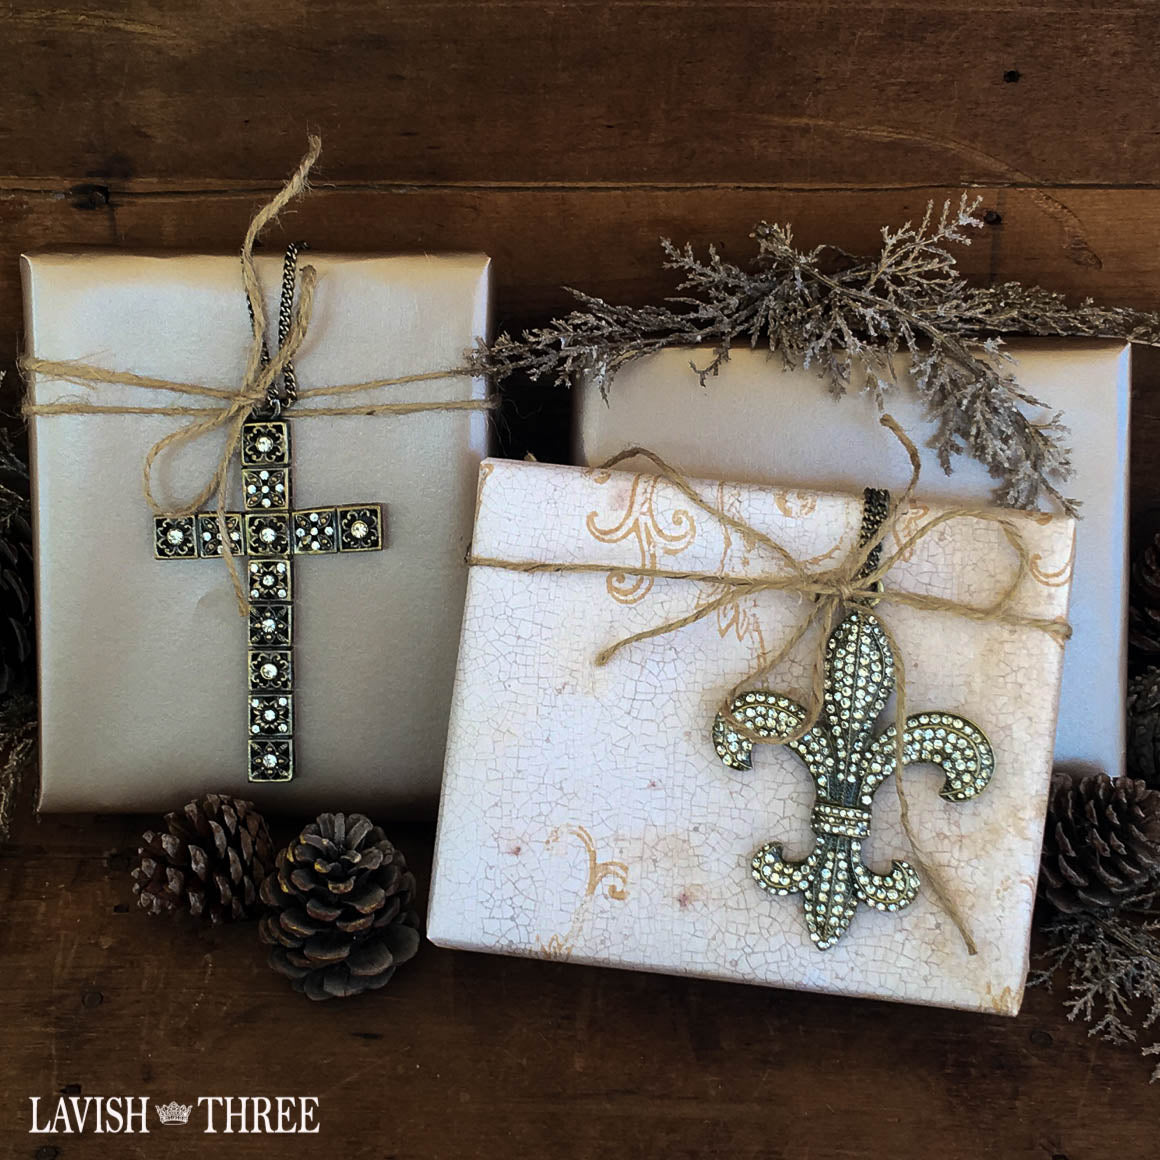 Fleur de lis ornament on chain wine bottle gift Lavish Three 3